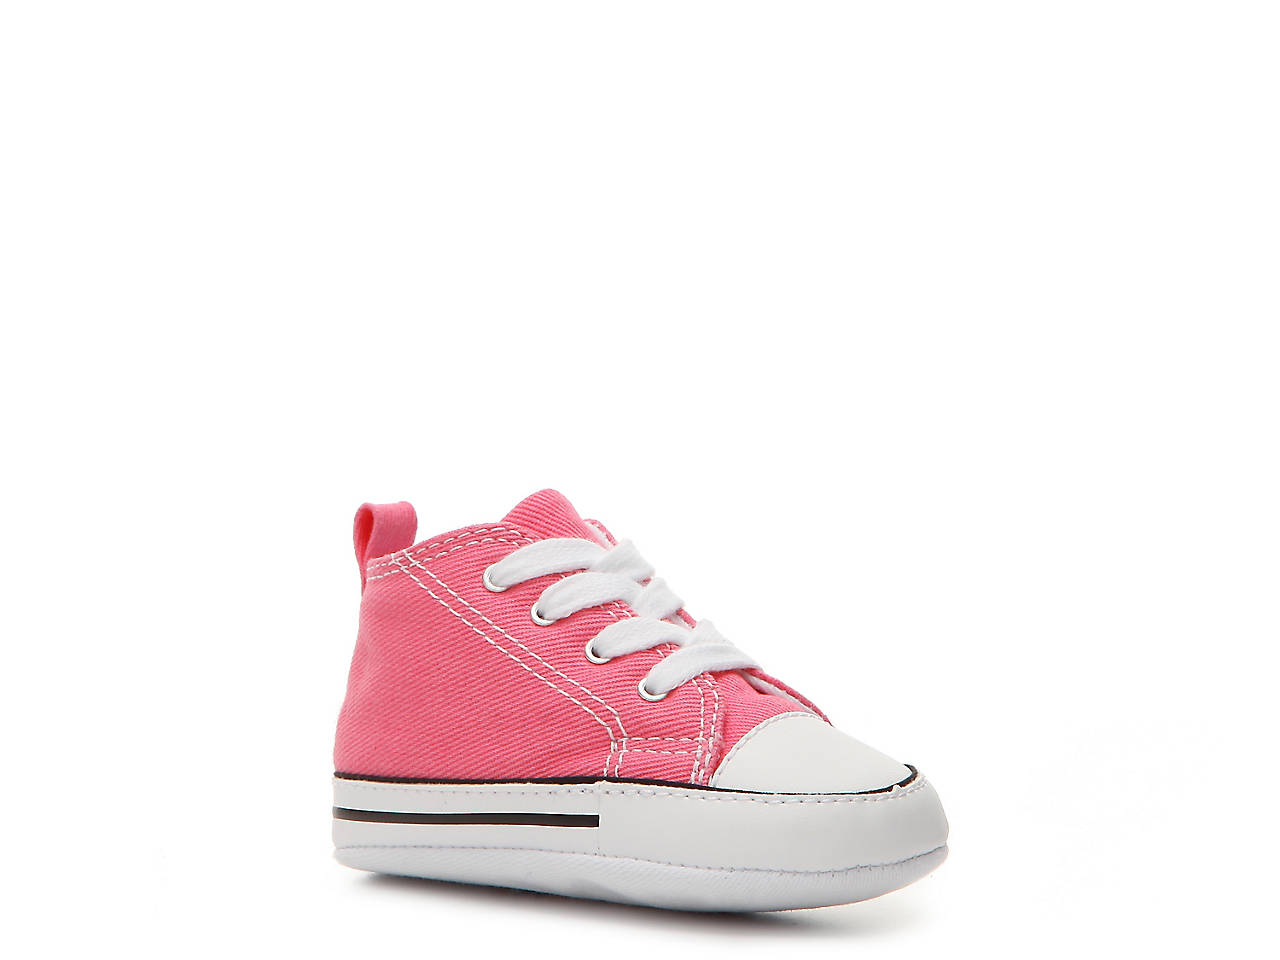 60be12795cab Converse Chuck Taylor All Star First Star Infant Crib Shoe Kids ...